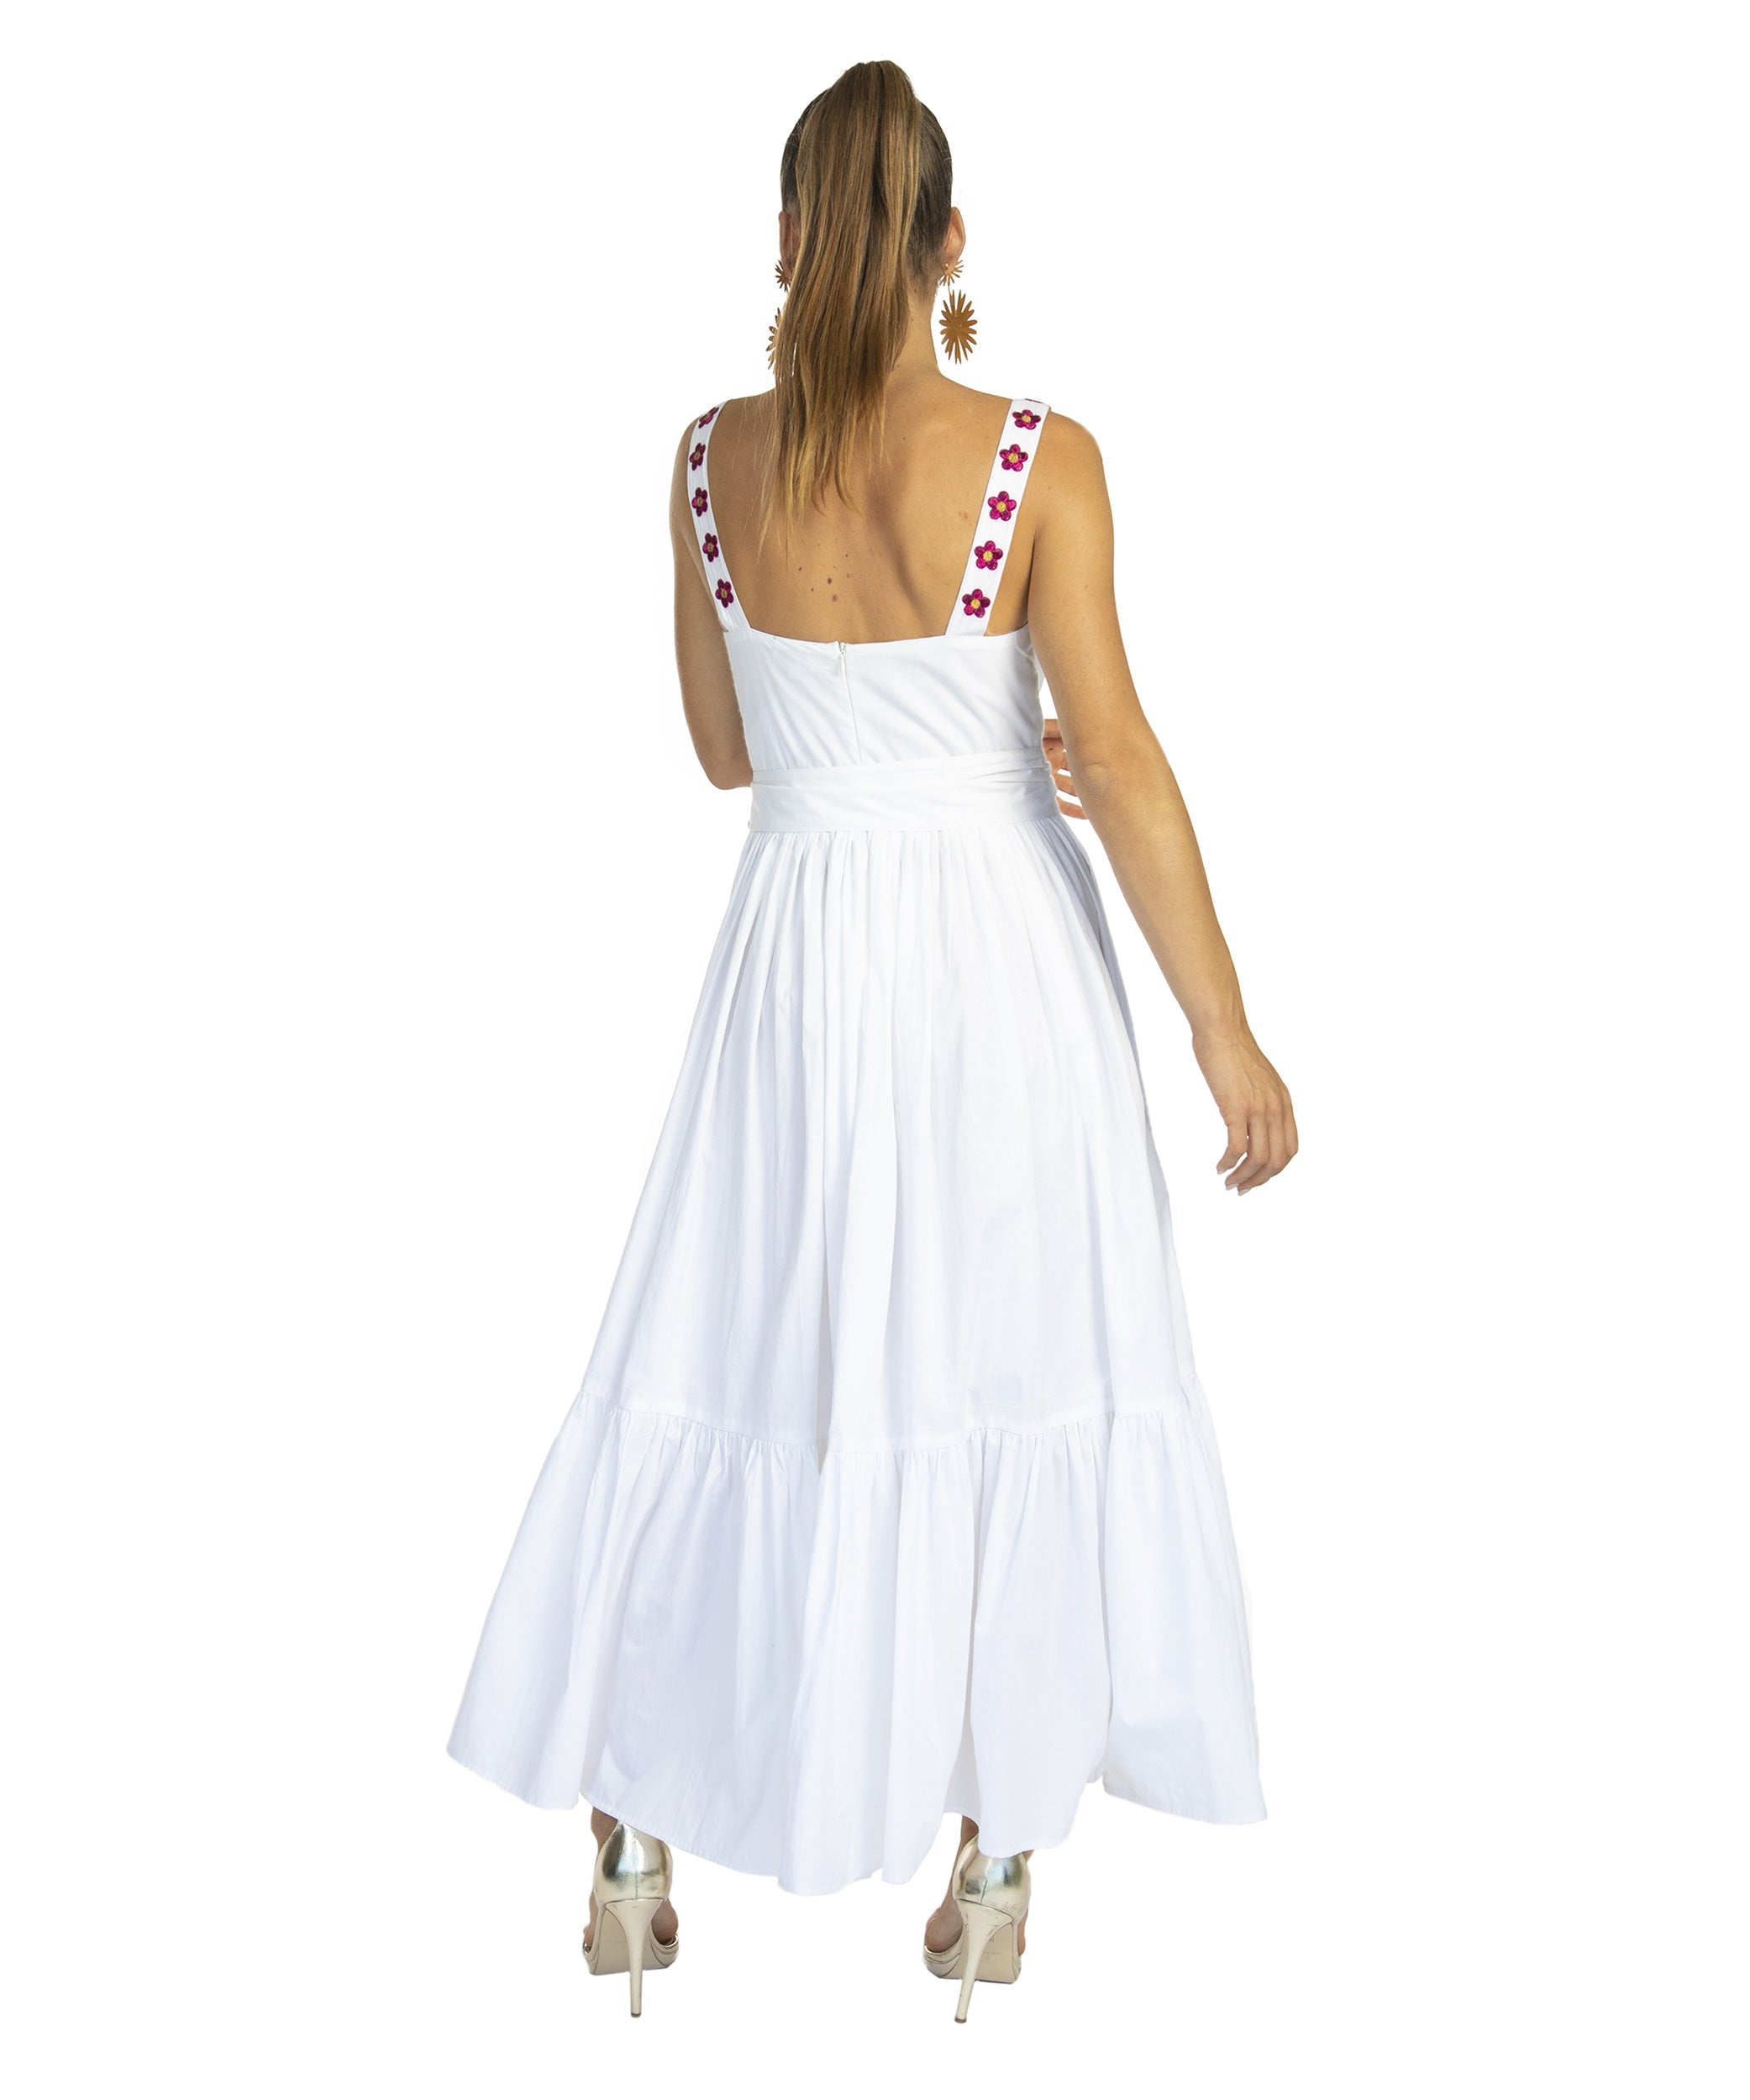 The White Havana Tie Dress